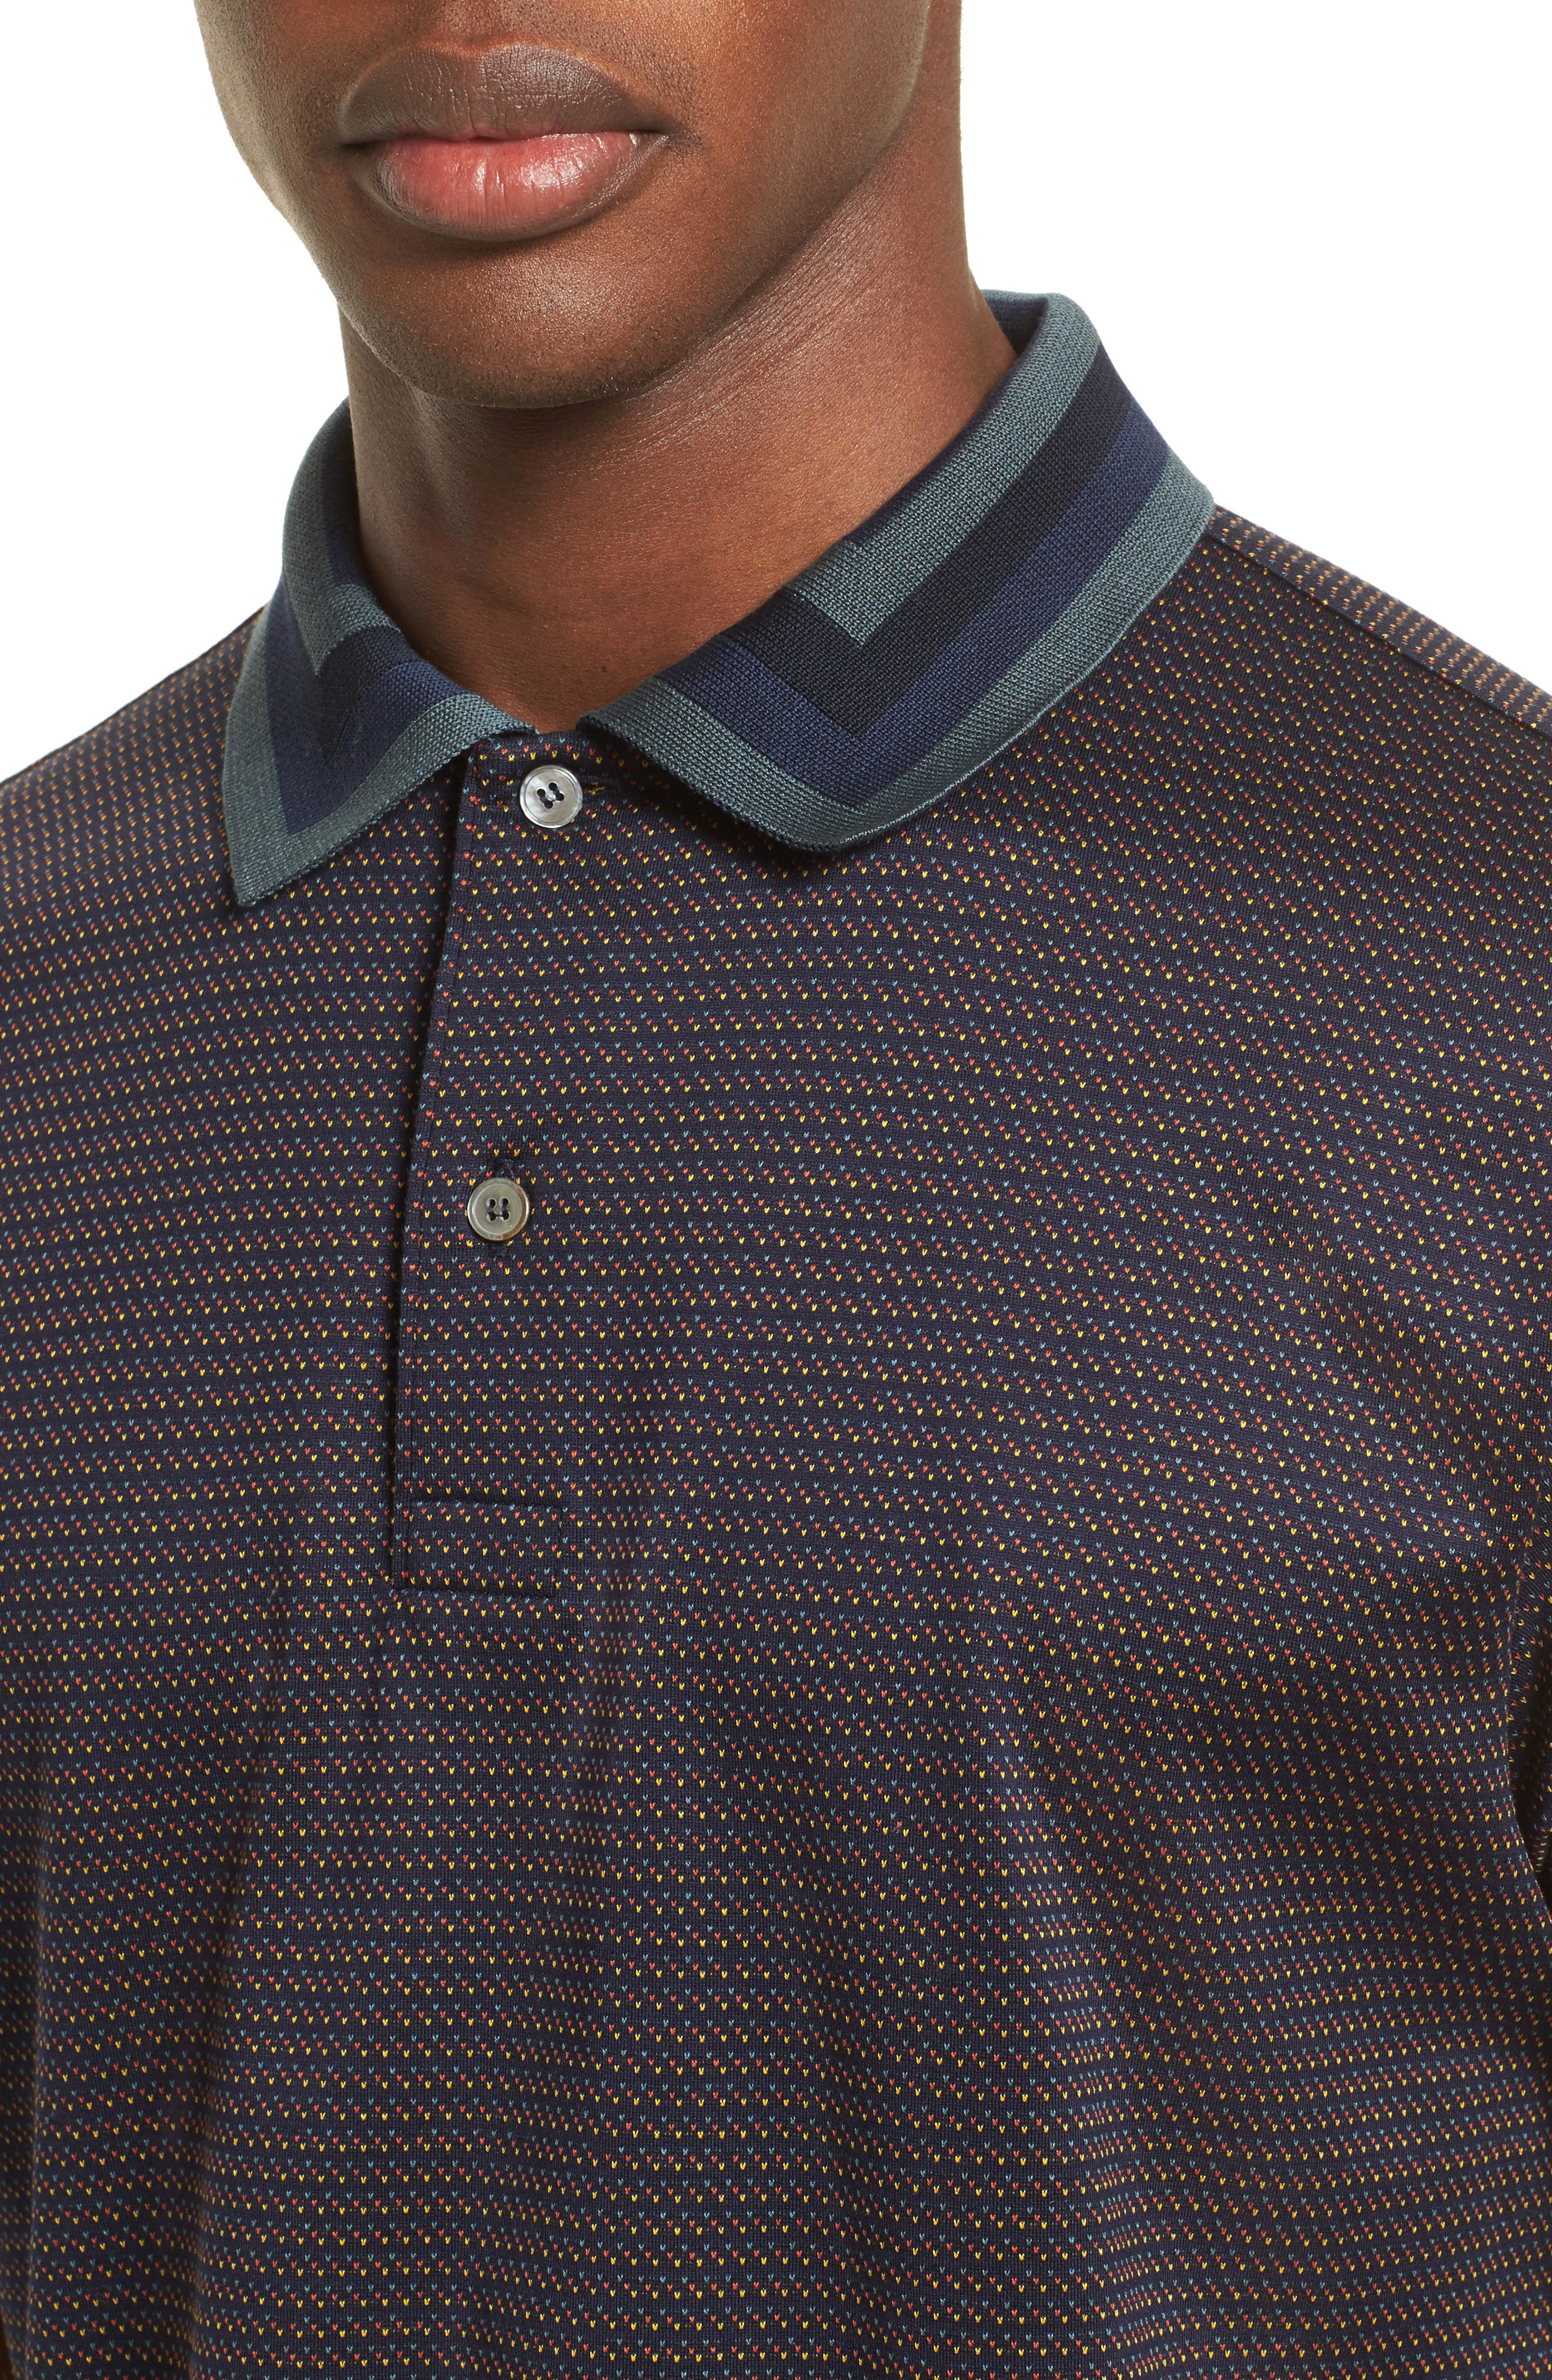 Micro Dot Polo,                             Alternate thumbnail 4, color,                             410